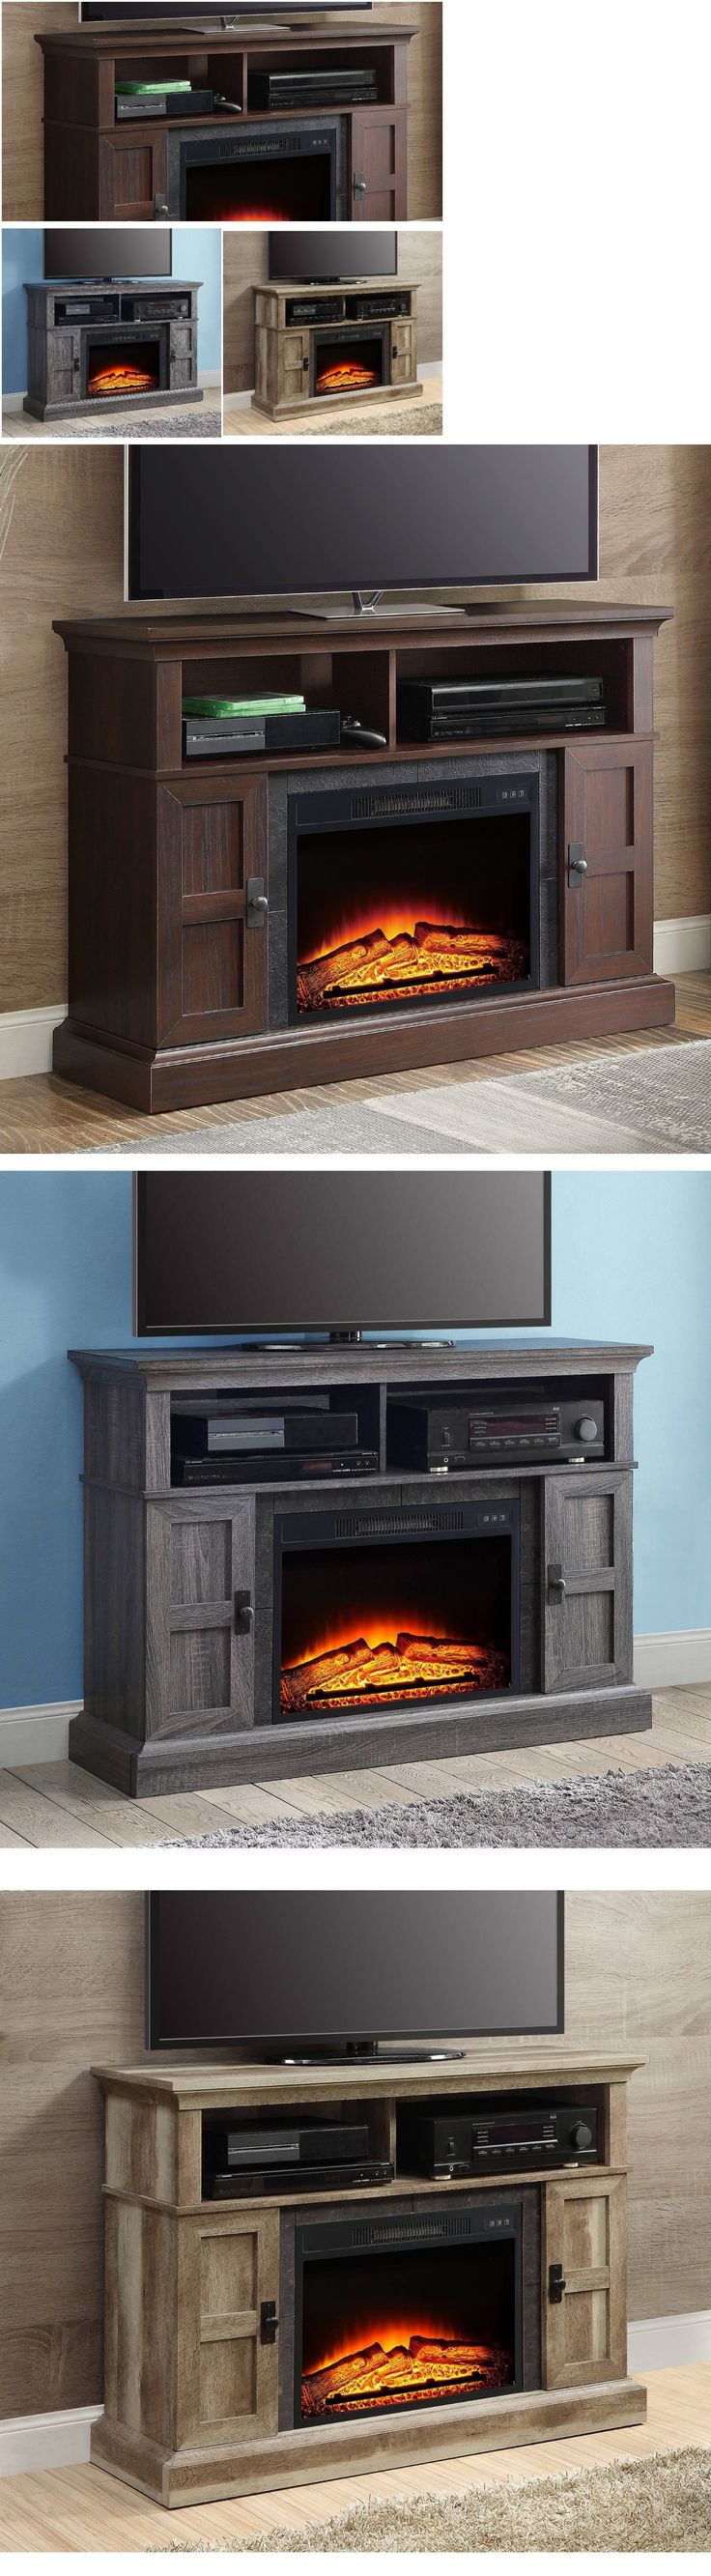 Entertainment Units TV Stands: Media Electric Fireplace Tv Stand 55 Heater Entertainment Center Console Remote -> BUY IT NOW ONLY: $269.95 on eBay!